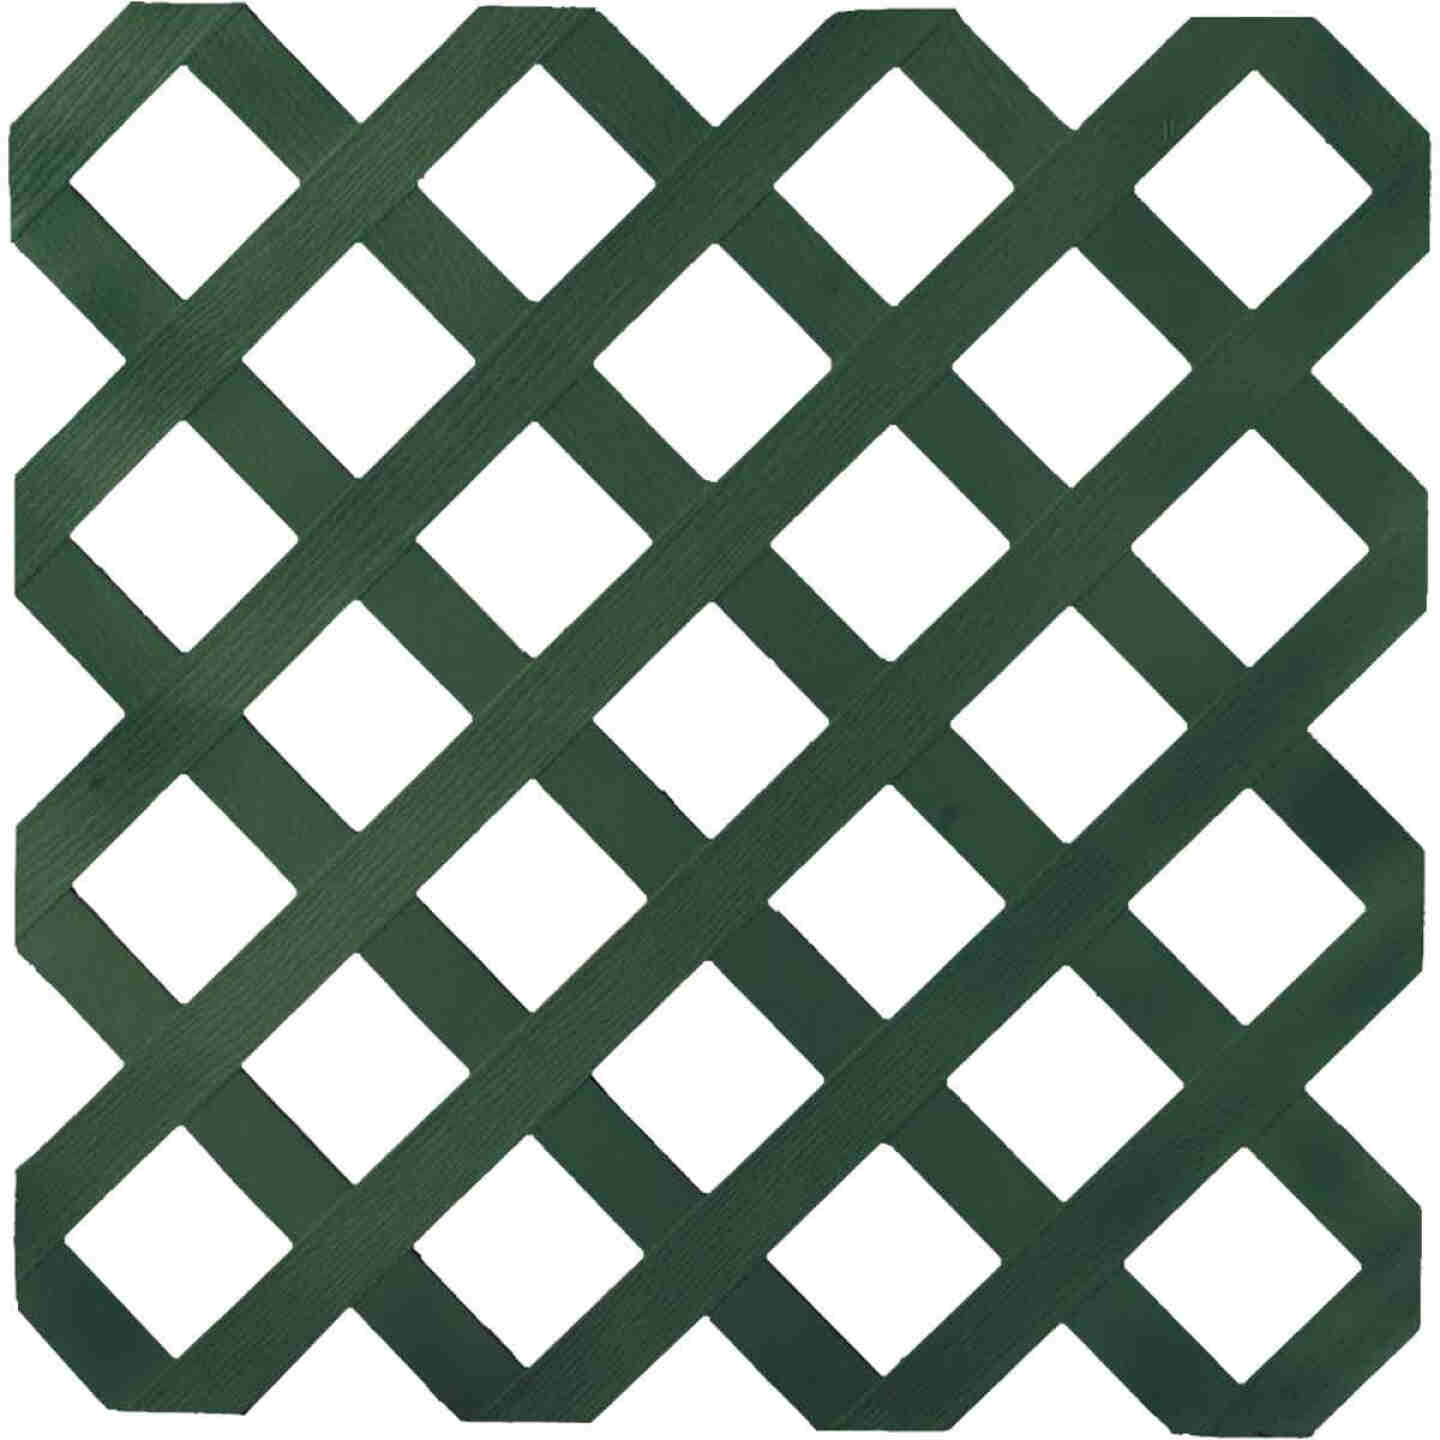 Dimensions 4 Ft. W x 8 Ft. L x 1/8 In. Thick Dark Green Vinyl Lattice Panel Image 1